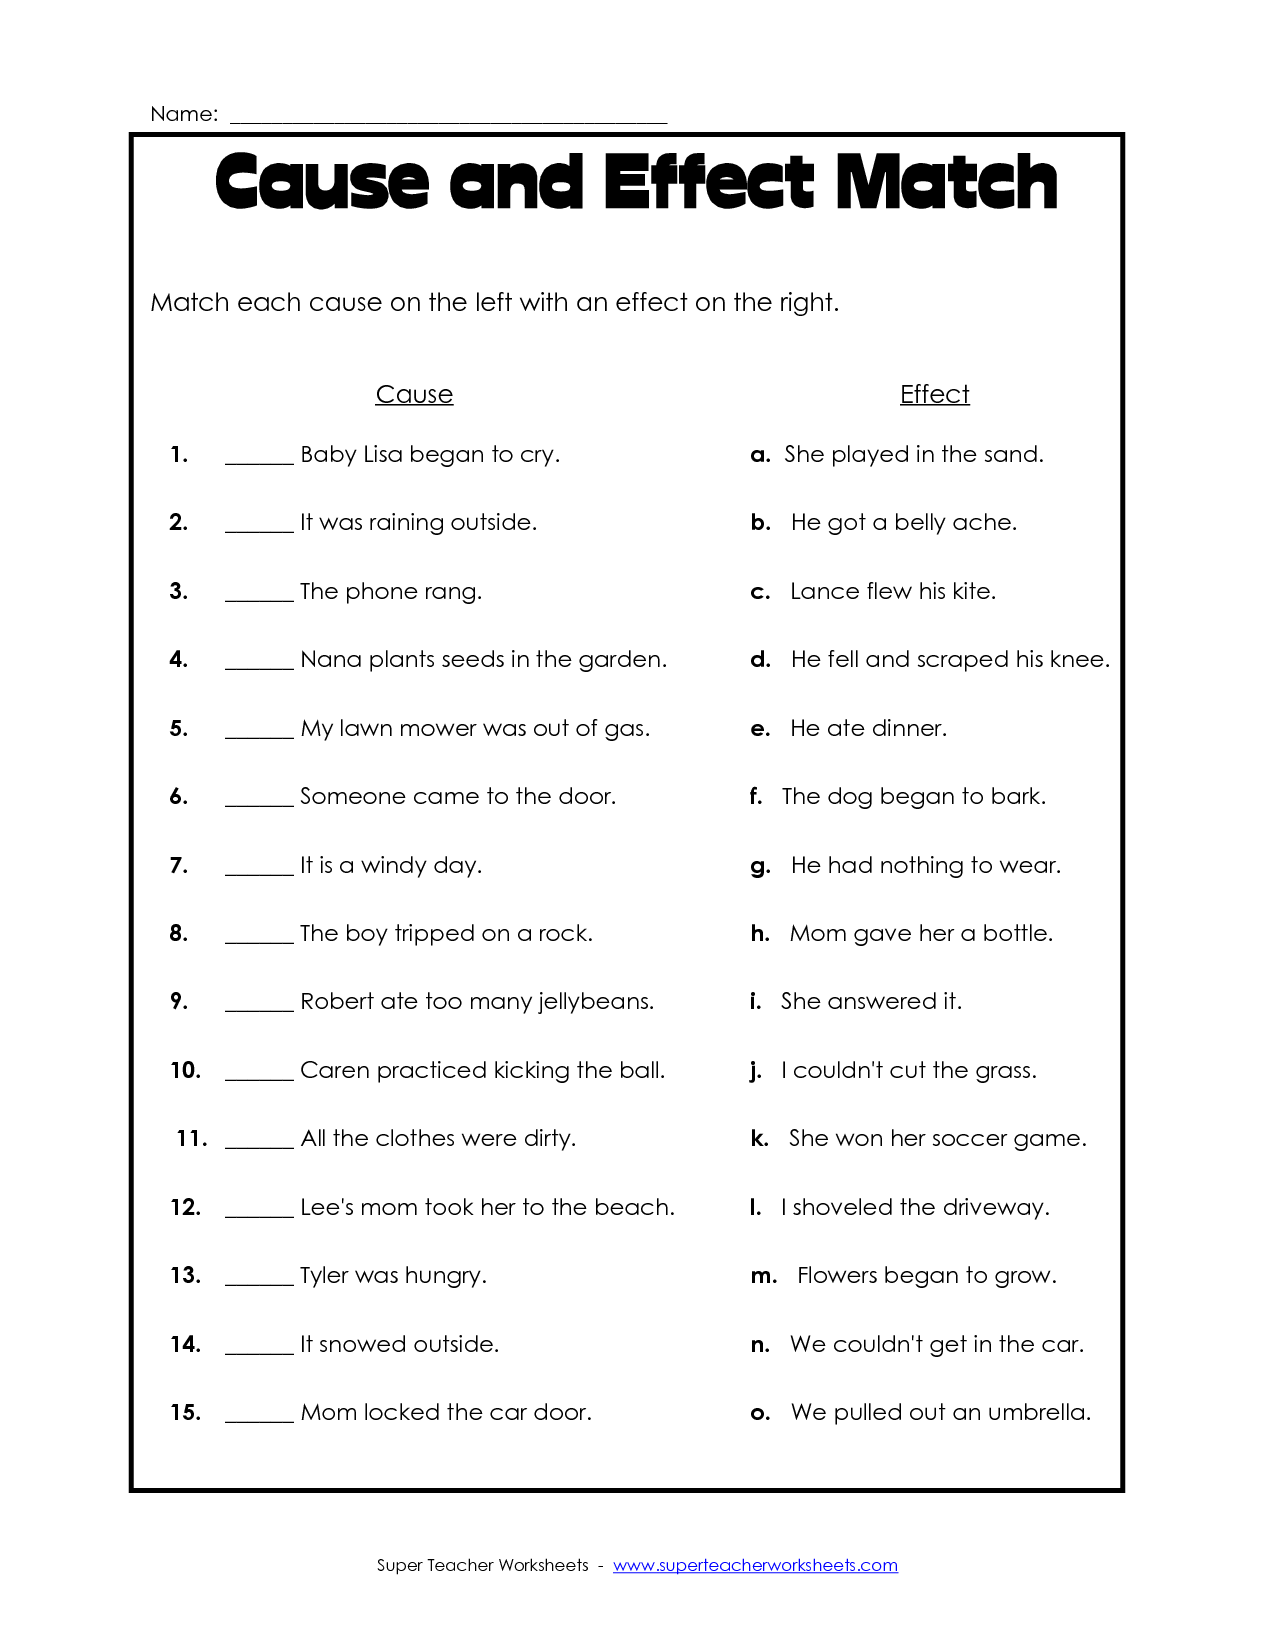 Cause And Effect Worksheet Modify To Become Observation Inference